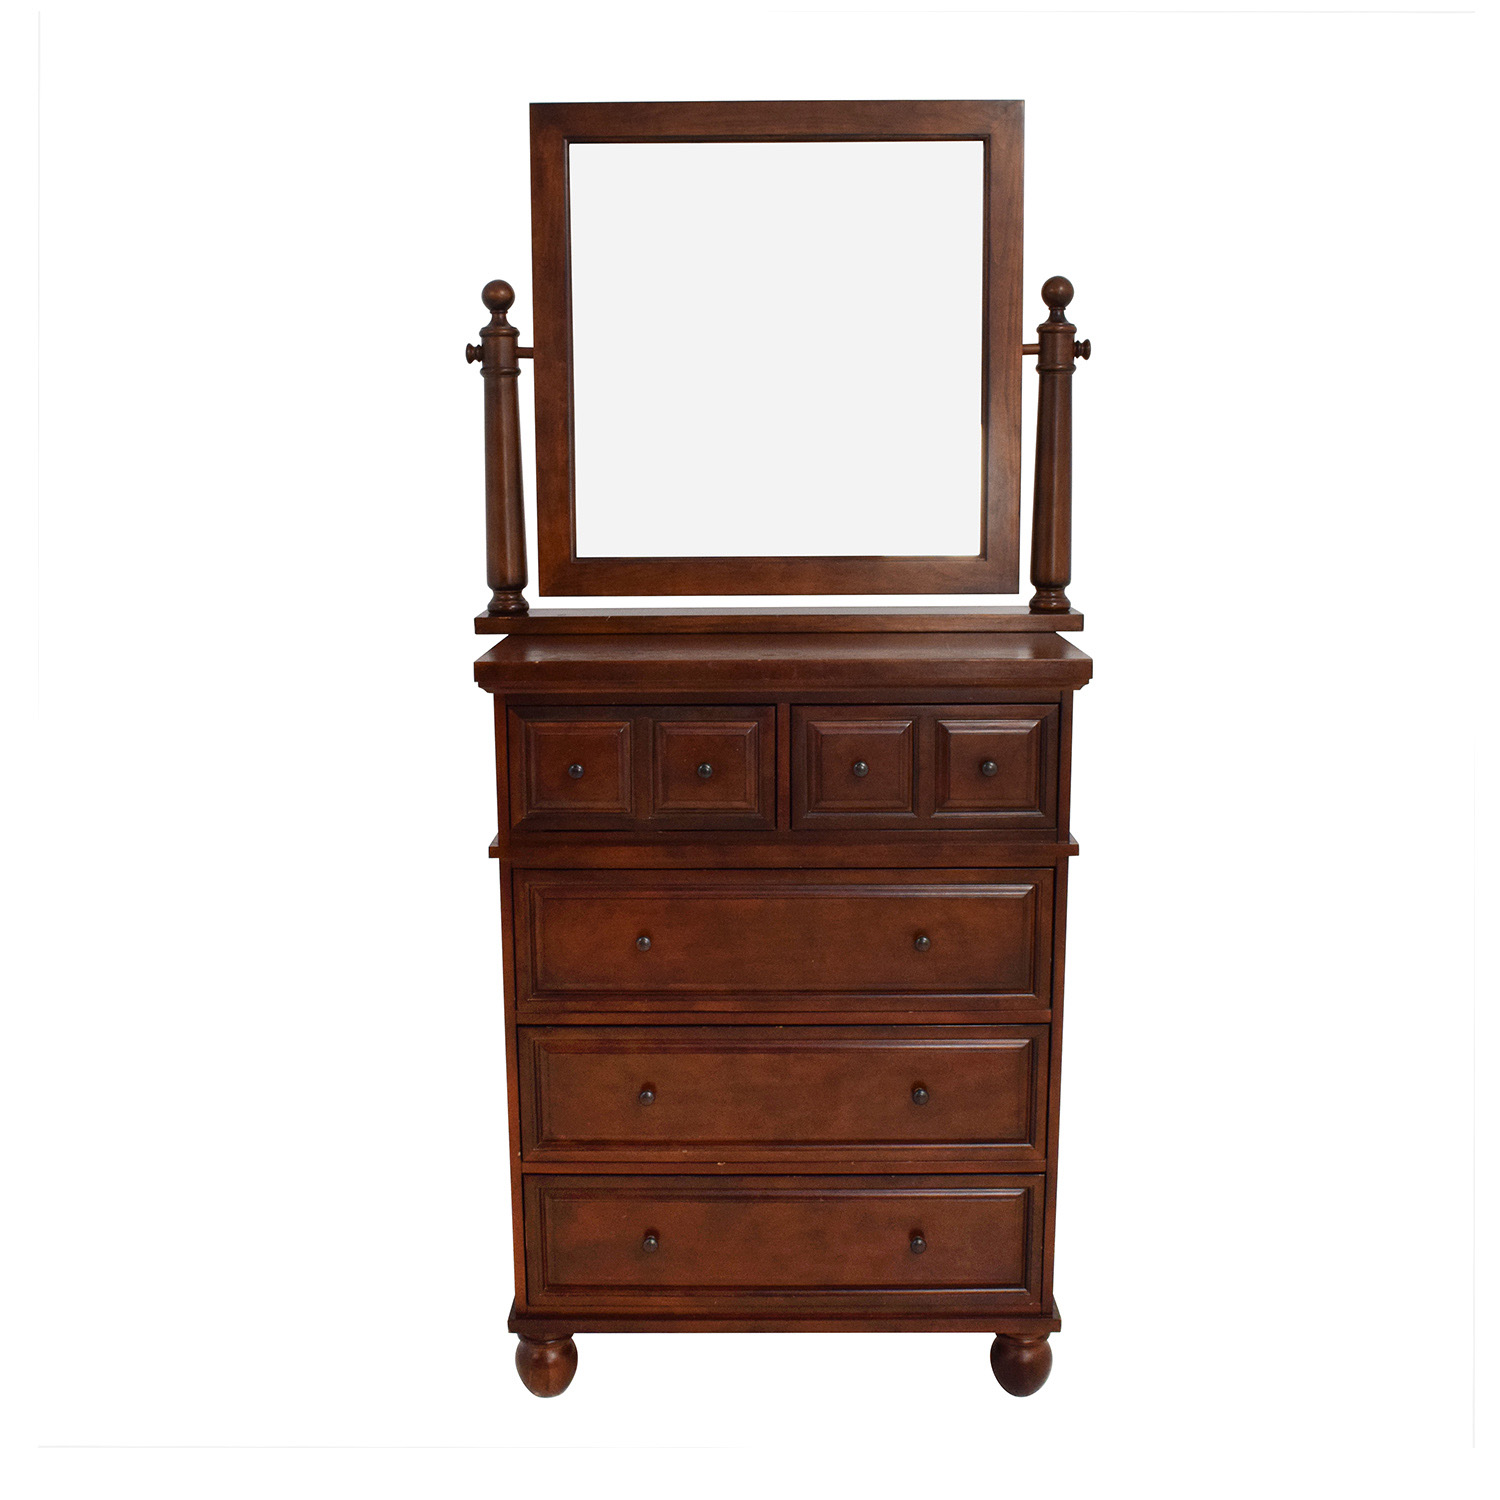 Pier 1 Imports Ashworth Five-Drawer Dresser / Storage